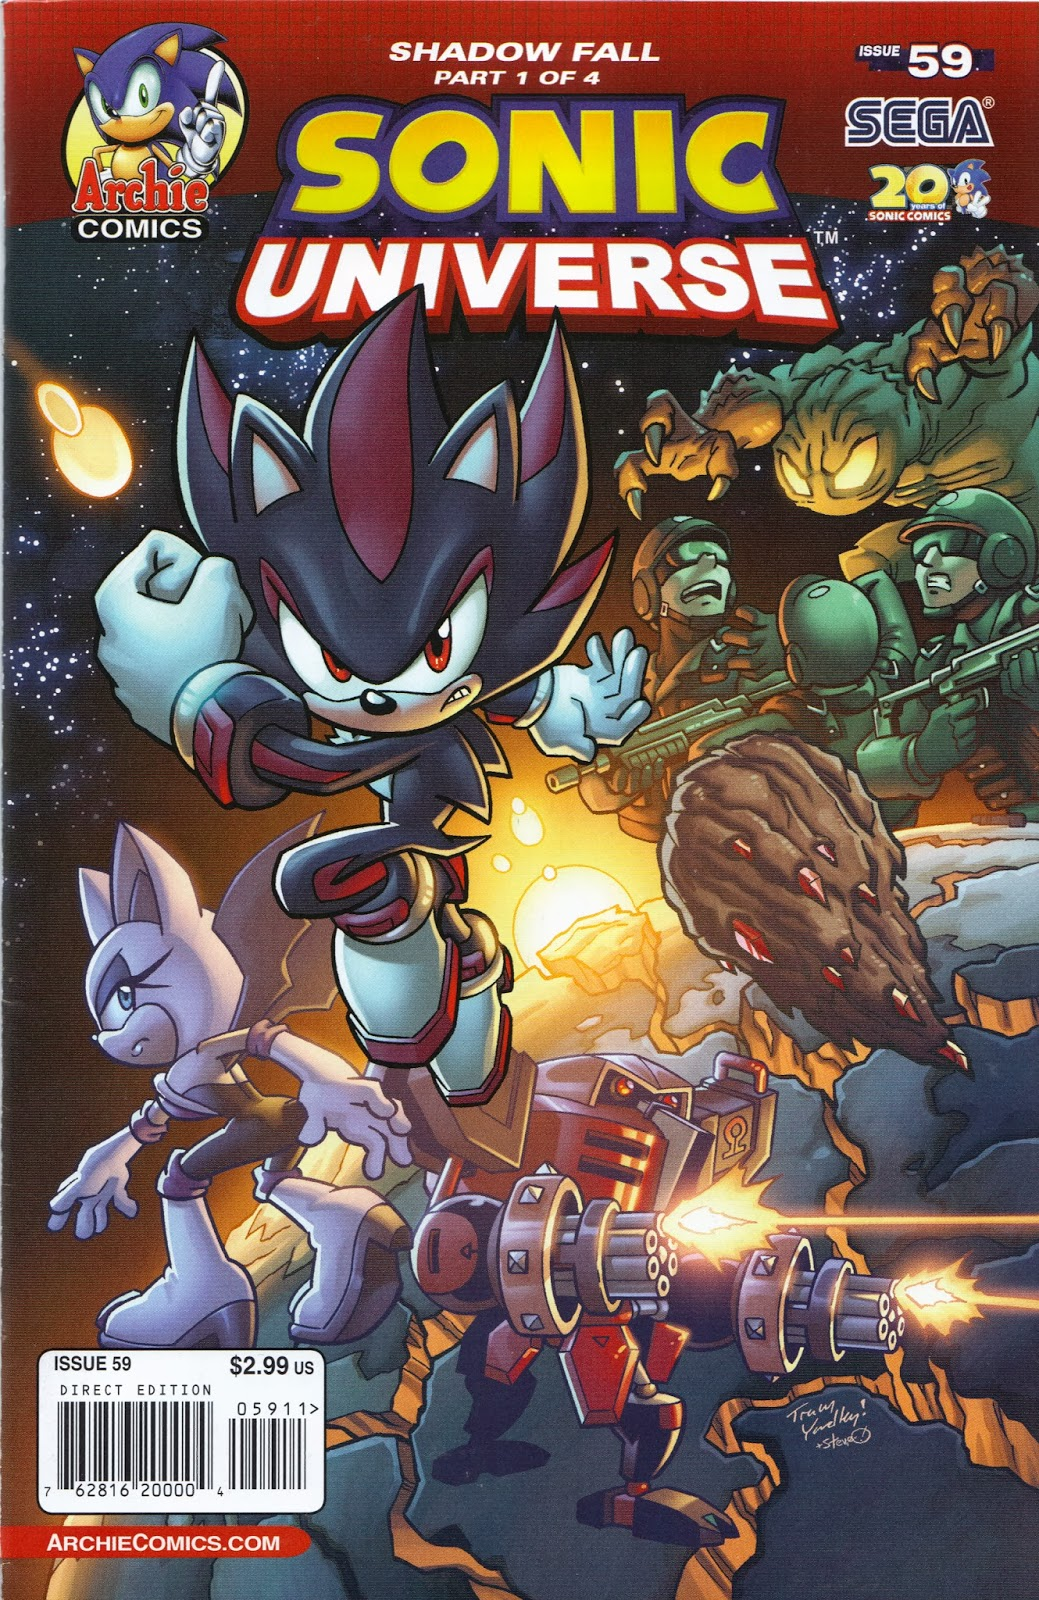 Recorded Land Shark Attacks: Review of the Week: Sonic Universe #59